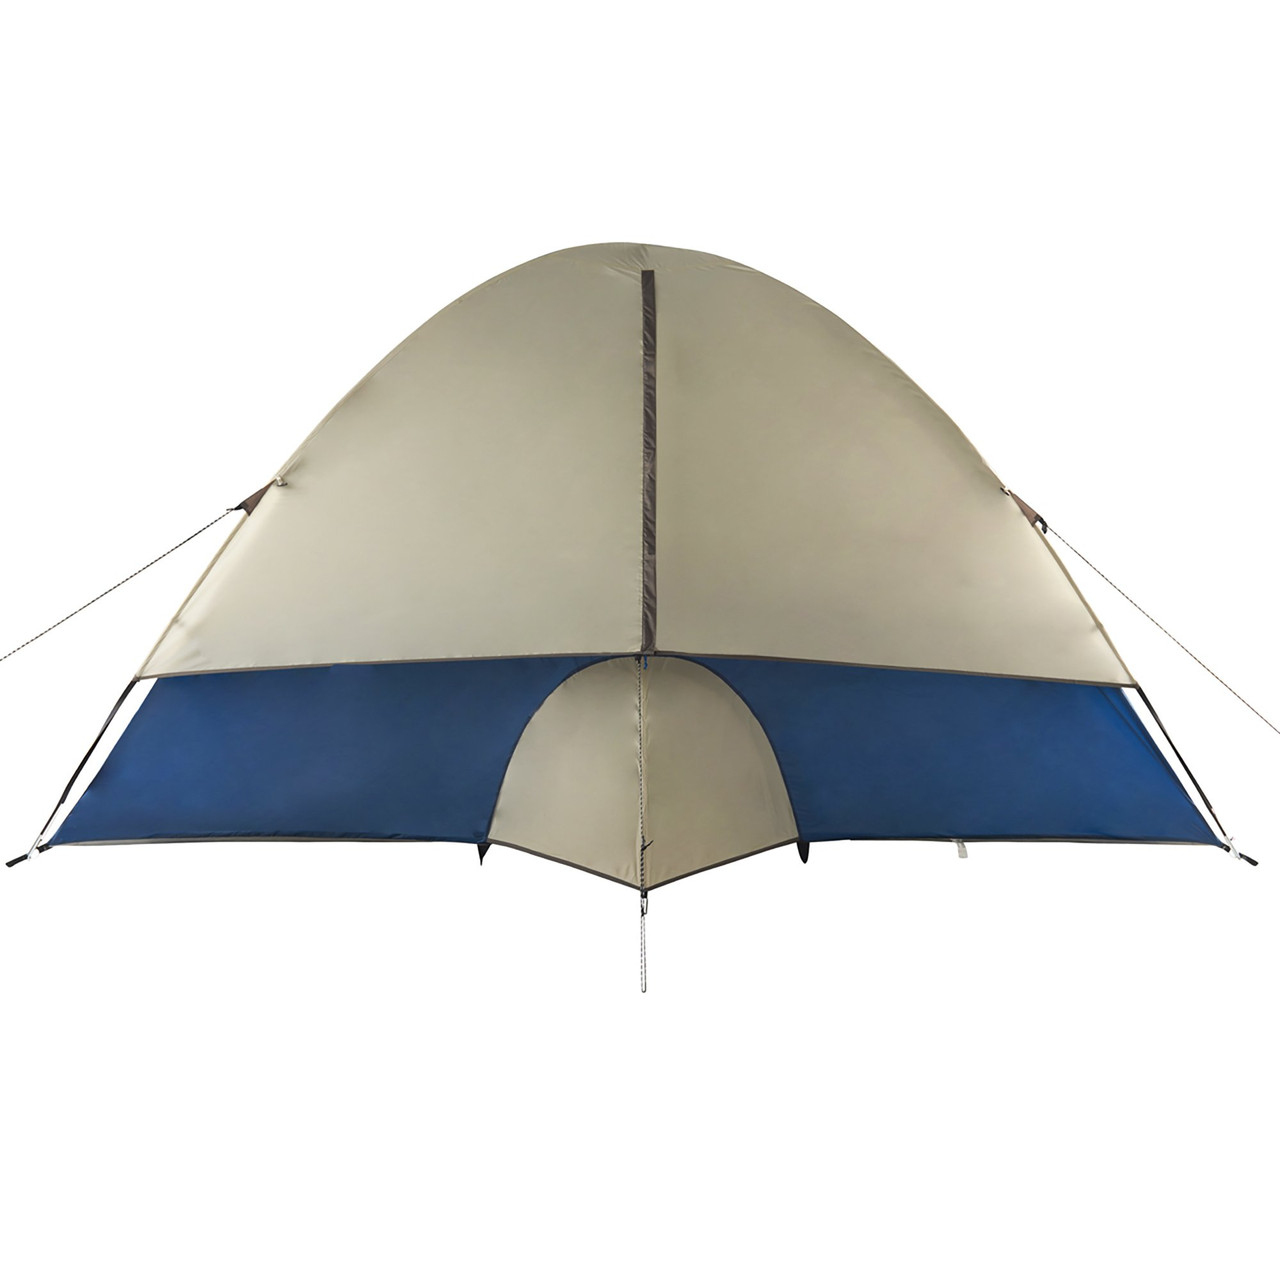 Wenzel Tamarack 6 Person Dome Tent, blue/white, rear view, with window fully closed